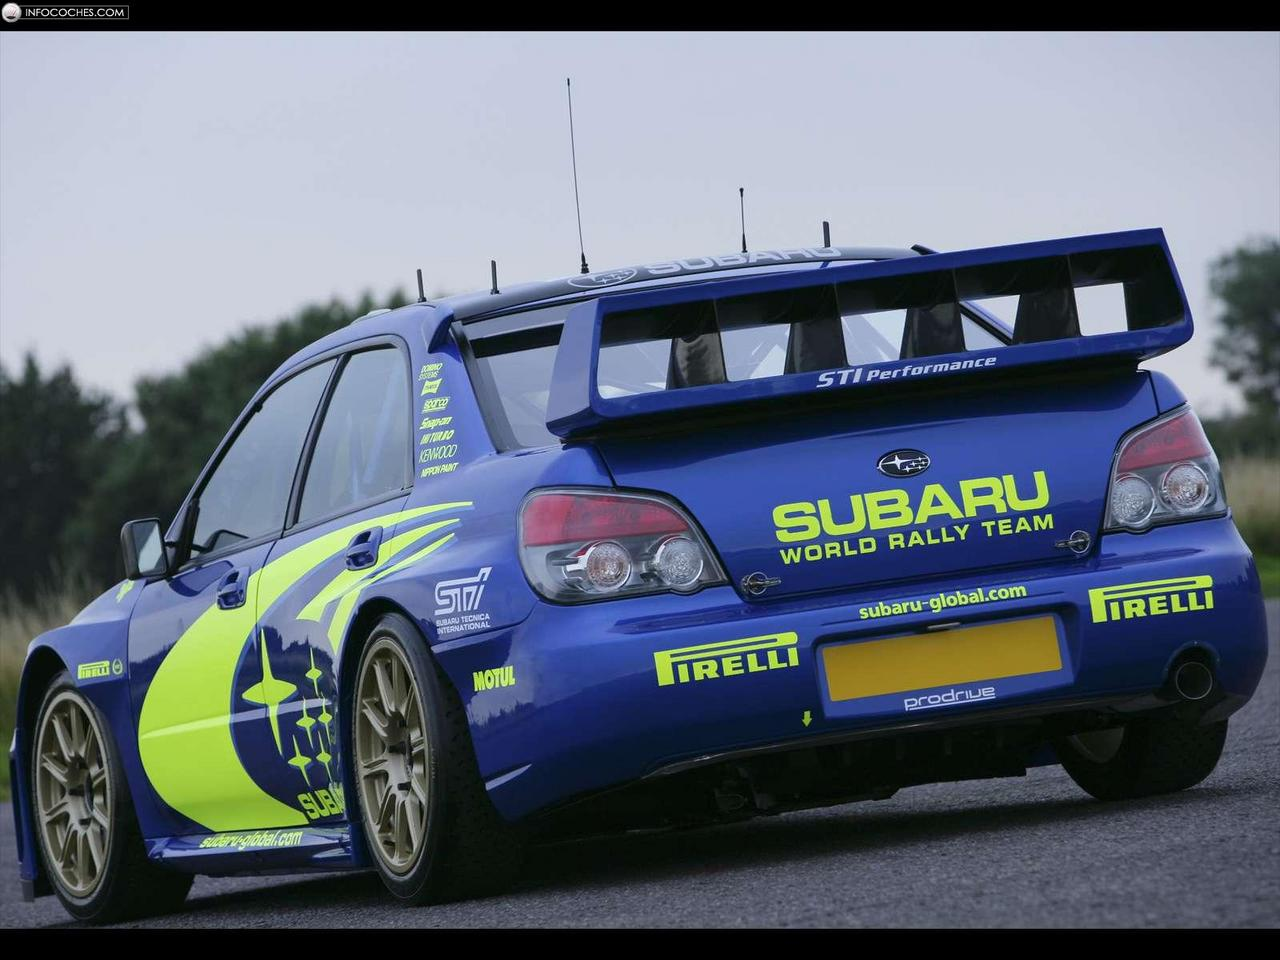 2019 Subaru Impreza WRC Prototype photo - 1